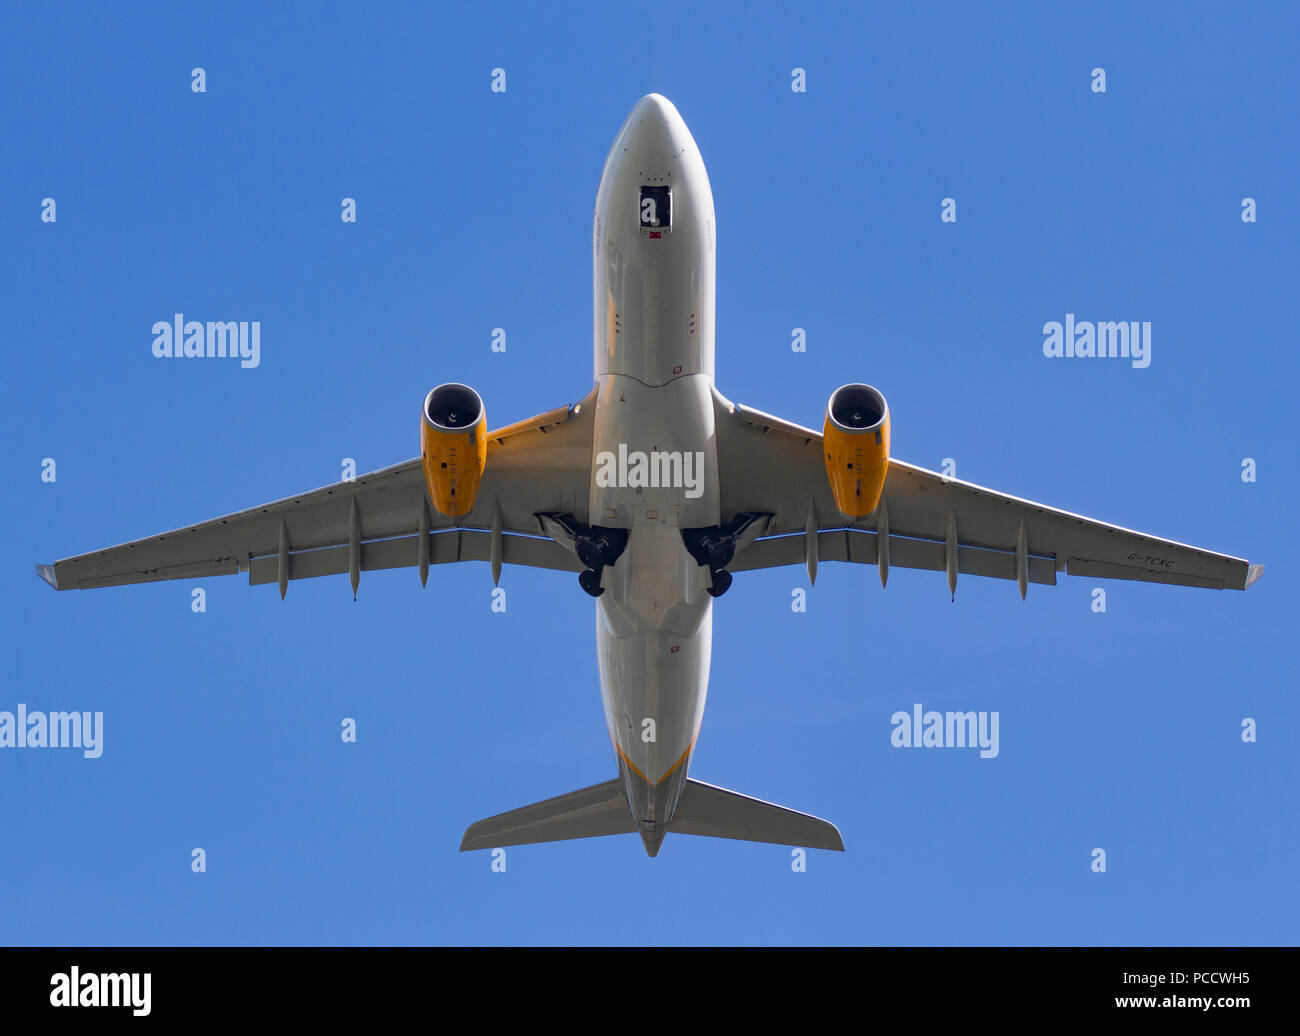 Thomas Cook G-TCXC Airbus A330-243 landing at Manchester Airport - Stock Image